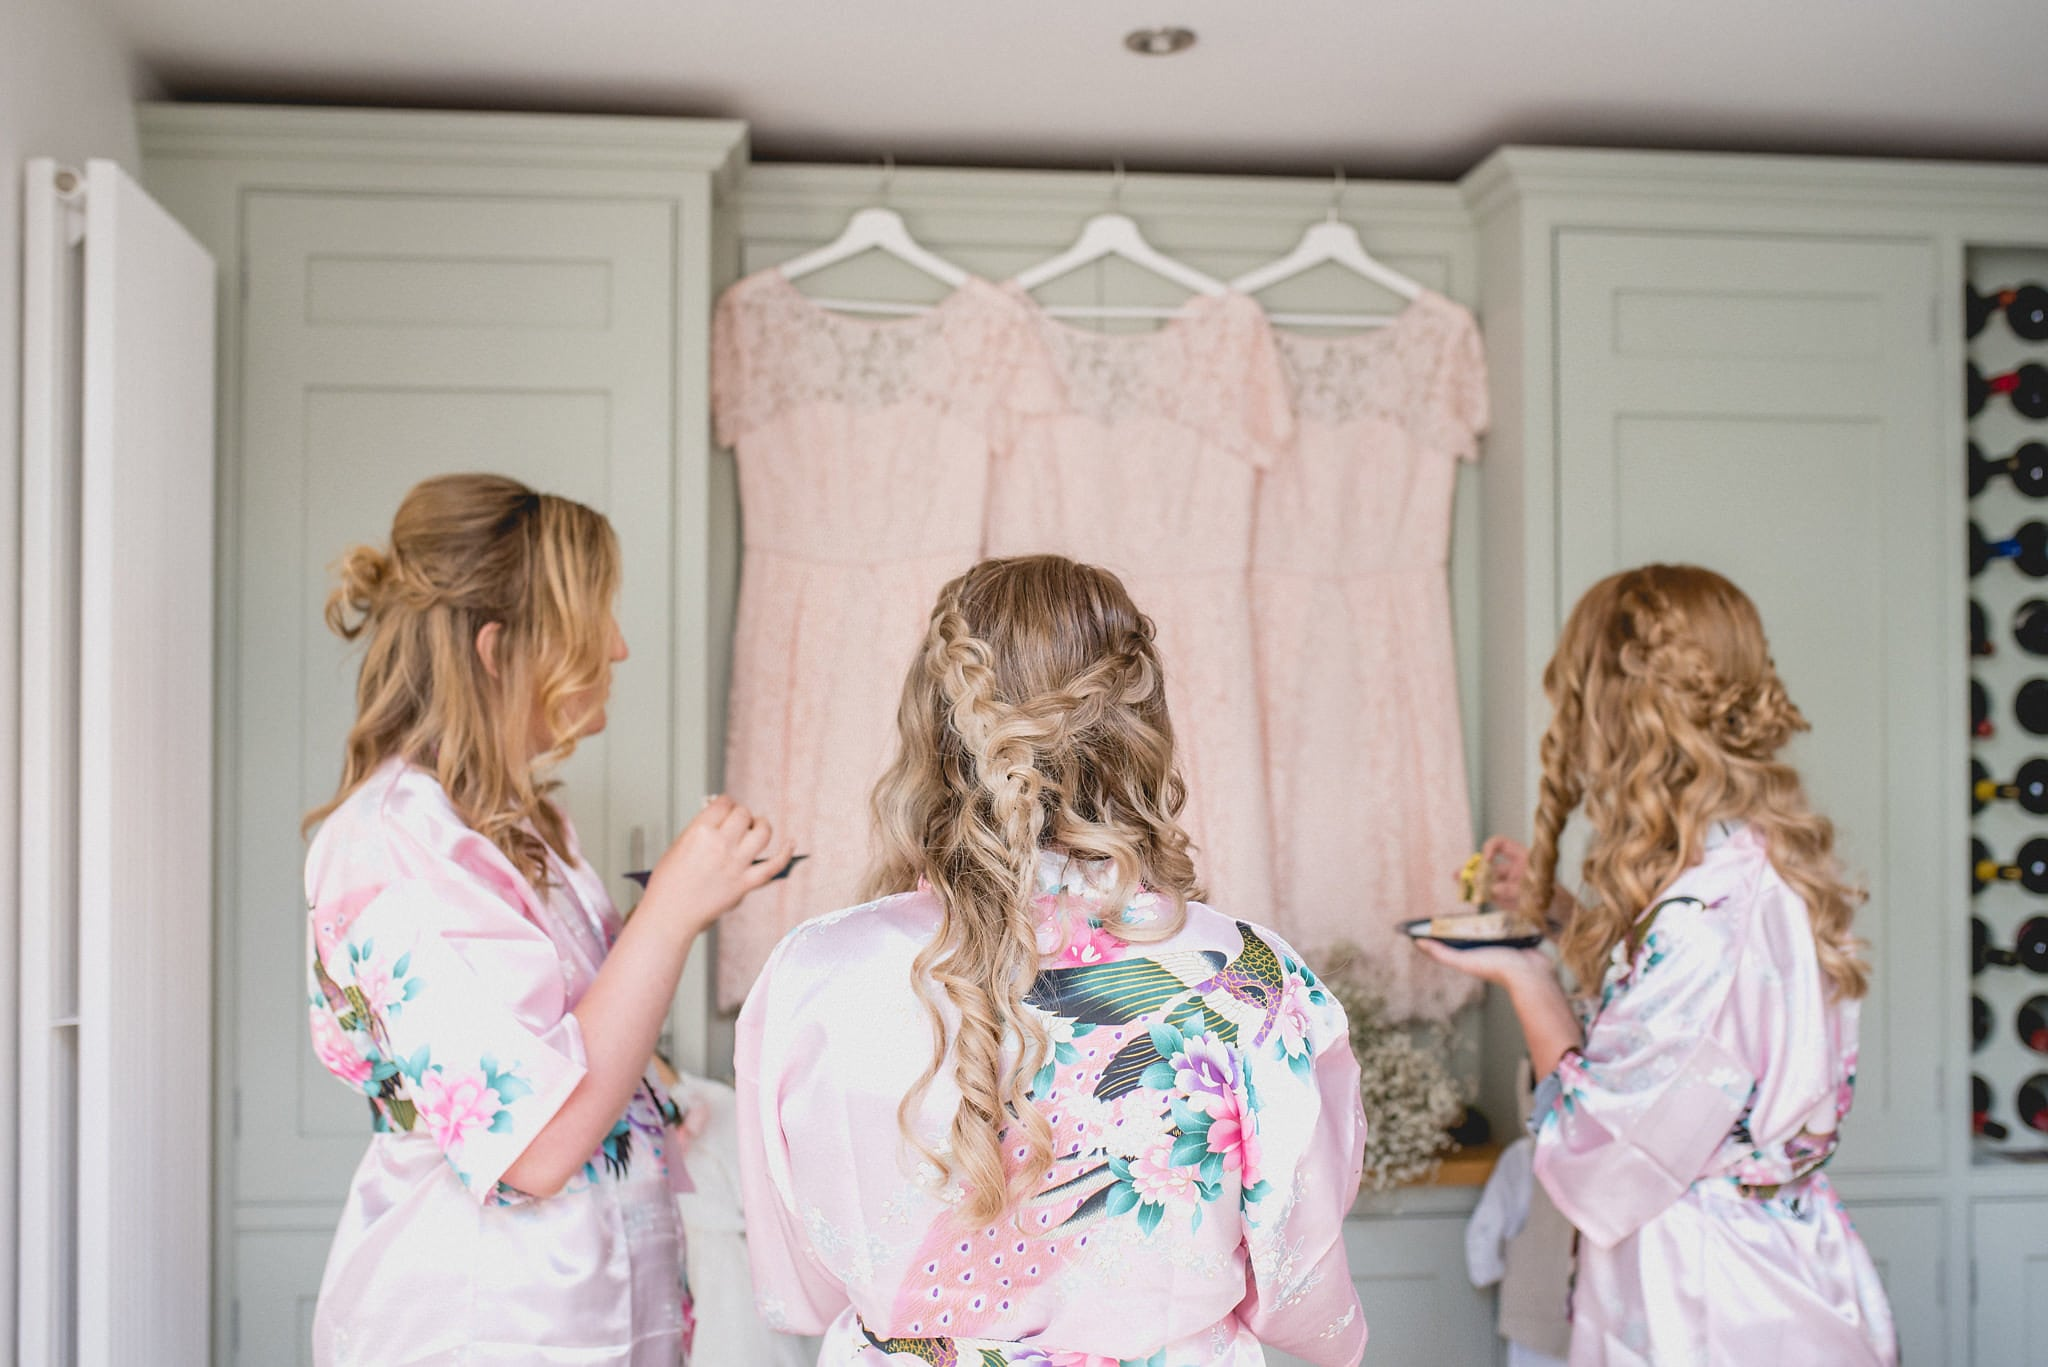 Bridesmaids in morning gowns look at their dresses hanging on a cupboard